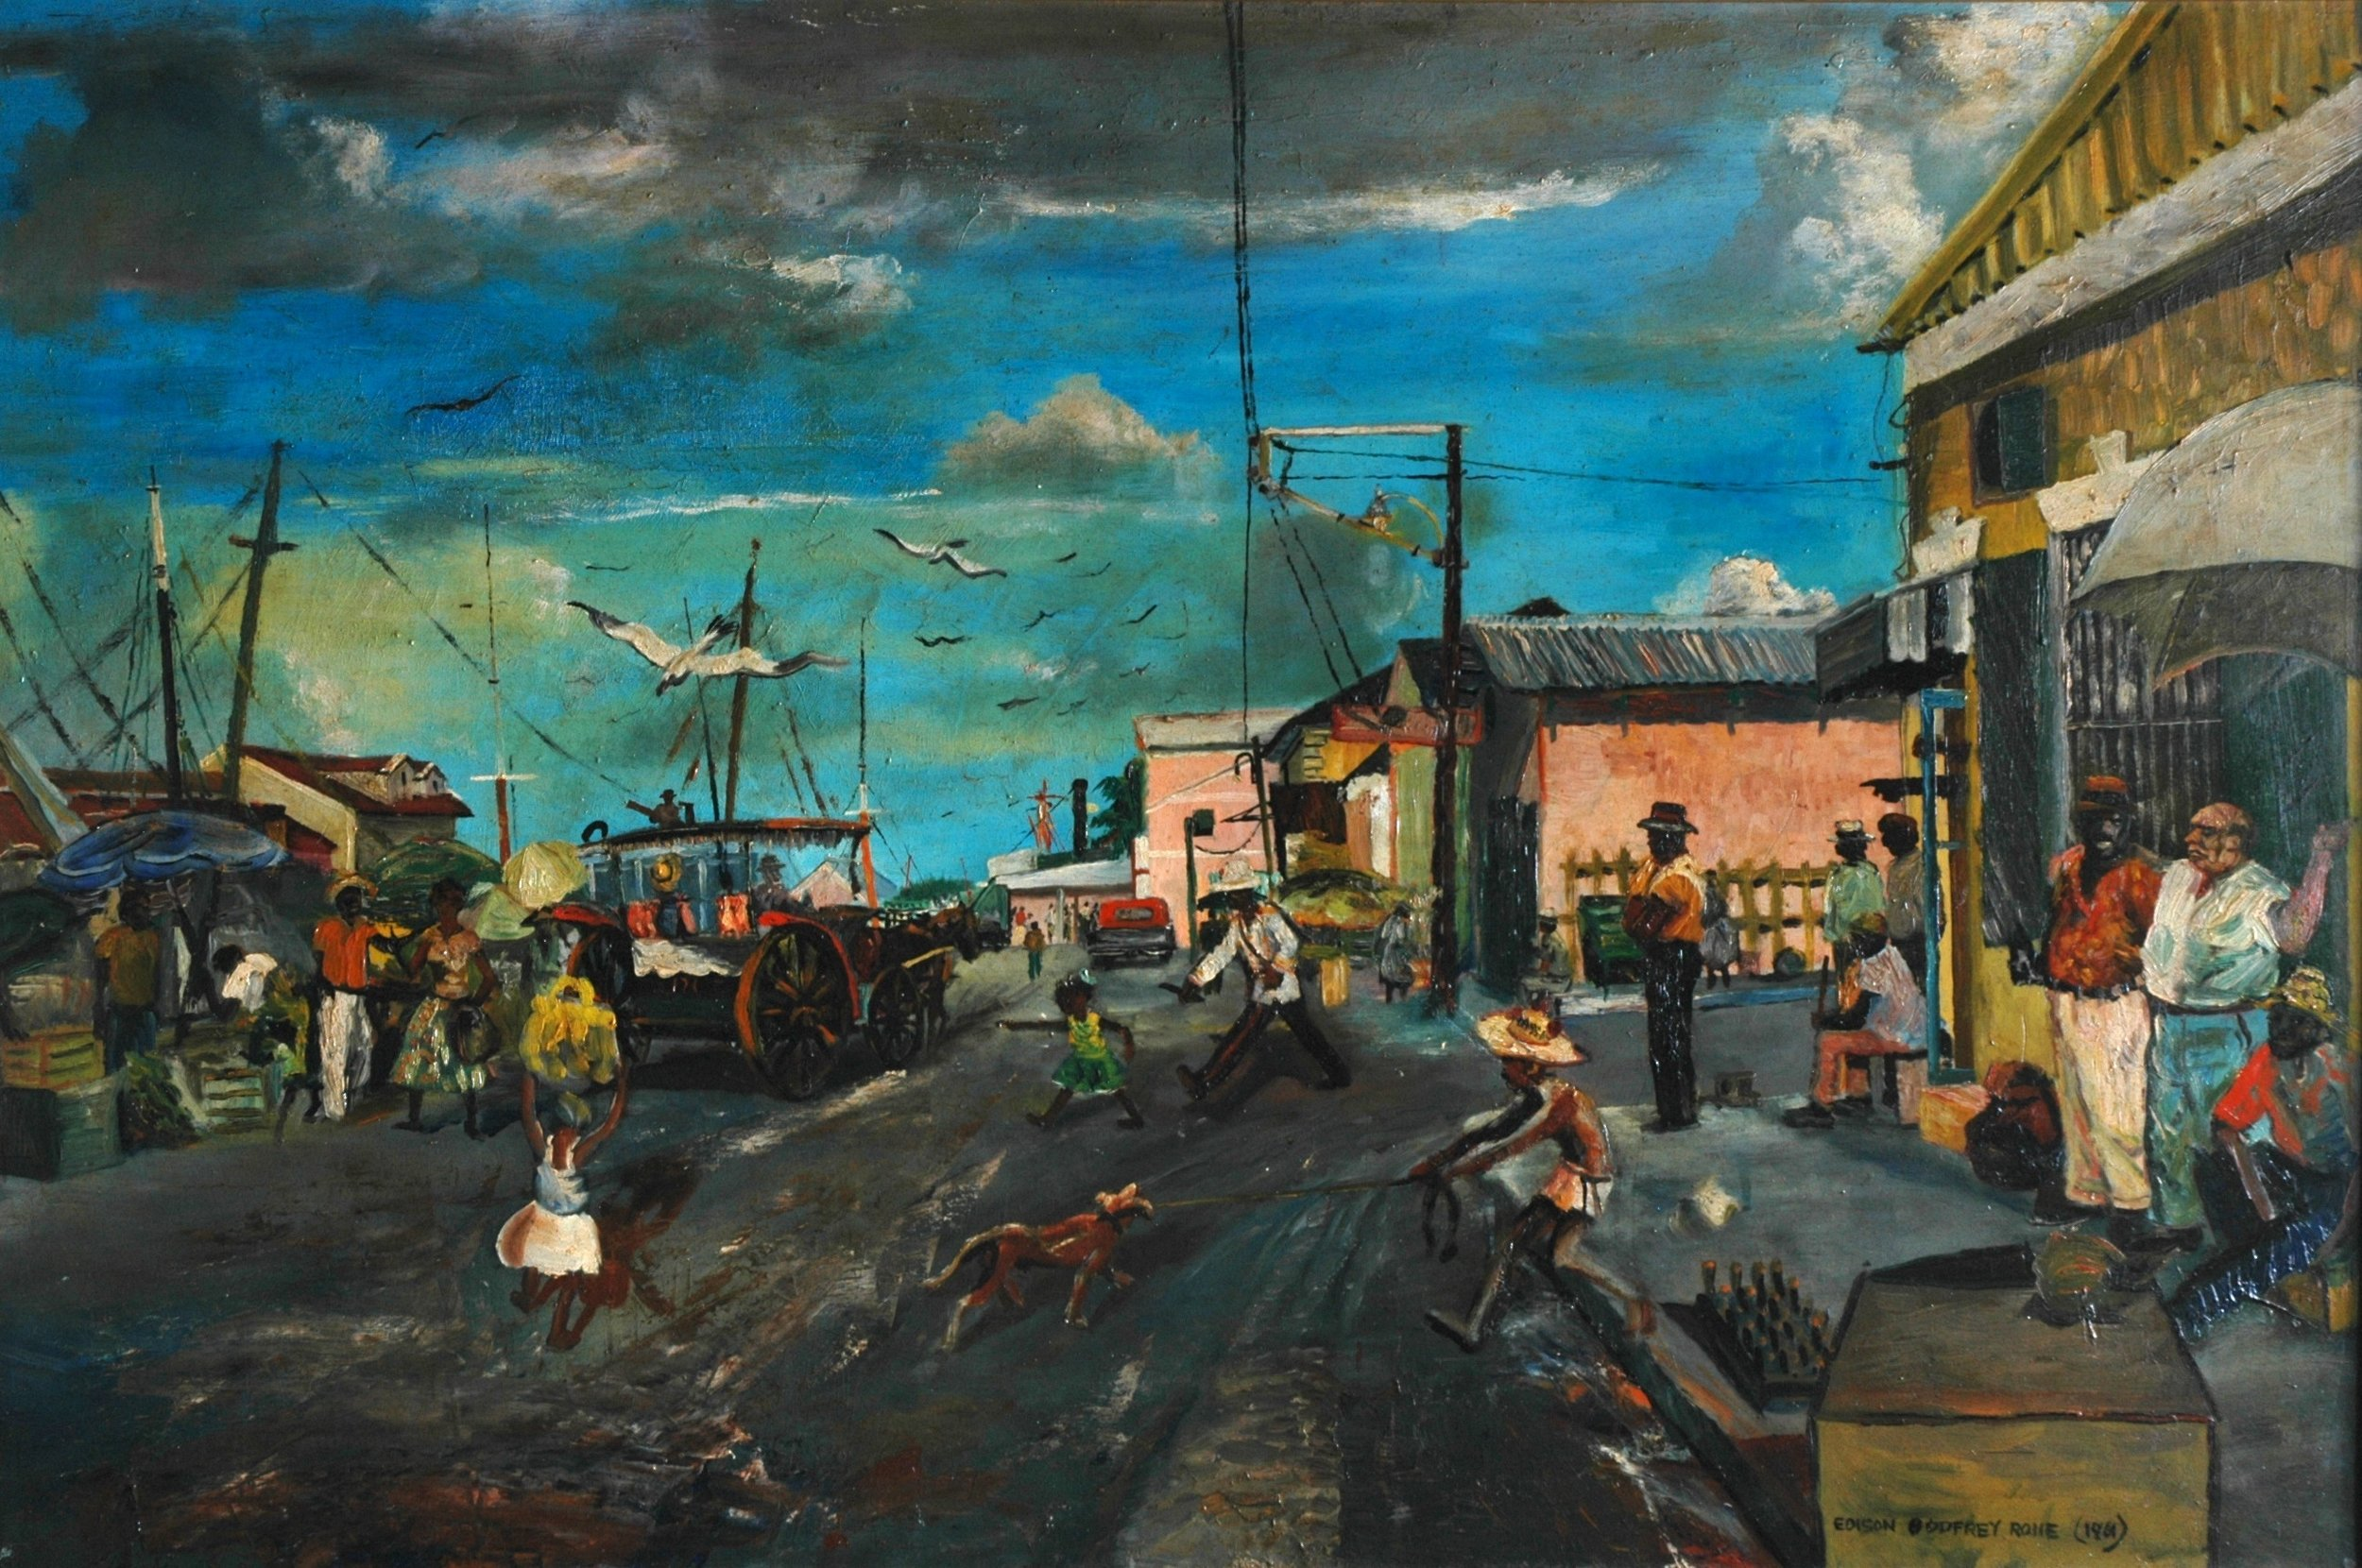 The Market Wharf by Edison Godfrey Rolfe, is part of the exhibit to come to the Elliott Museum, starting Dec. 15.(Photo: CONTRIBUTED BY NATIONAL ART GALLERY OF THE BAHAMAS)